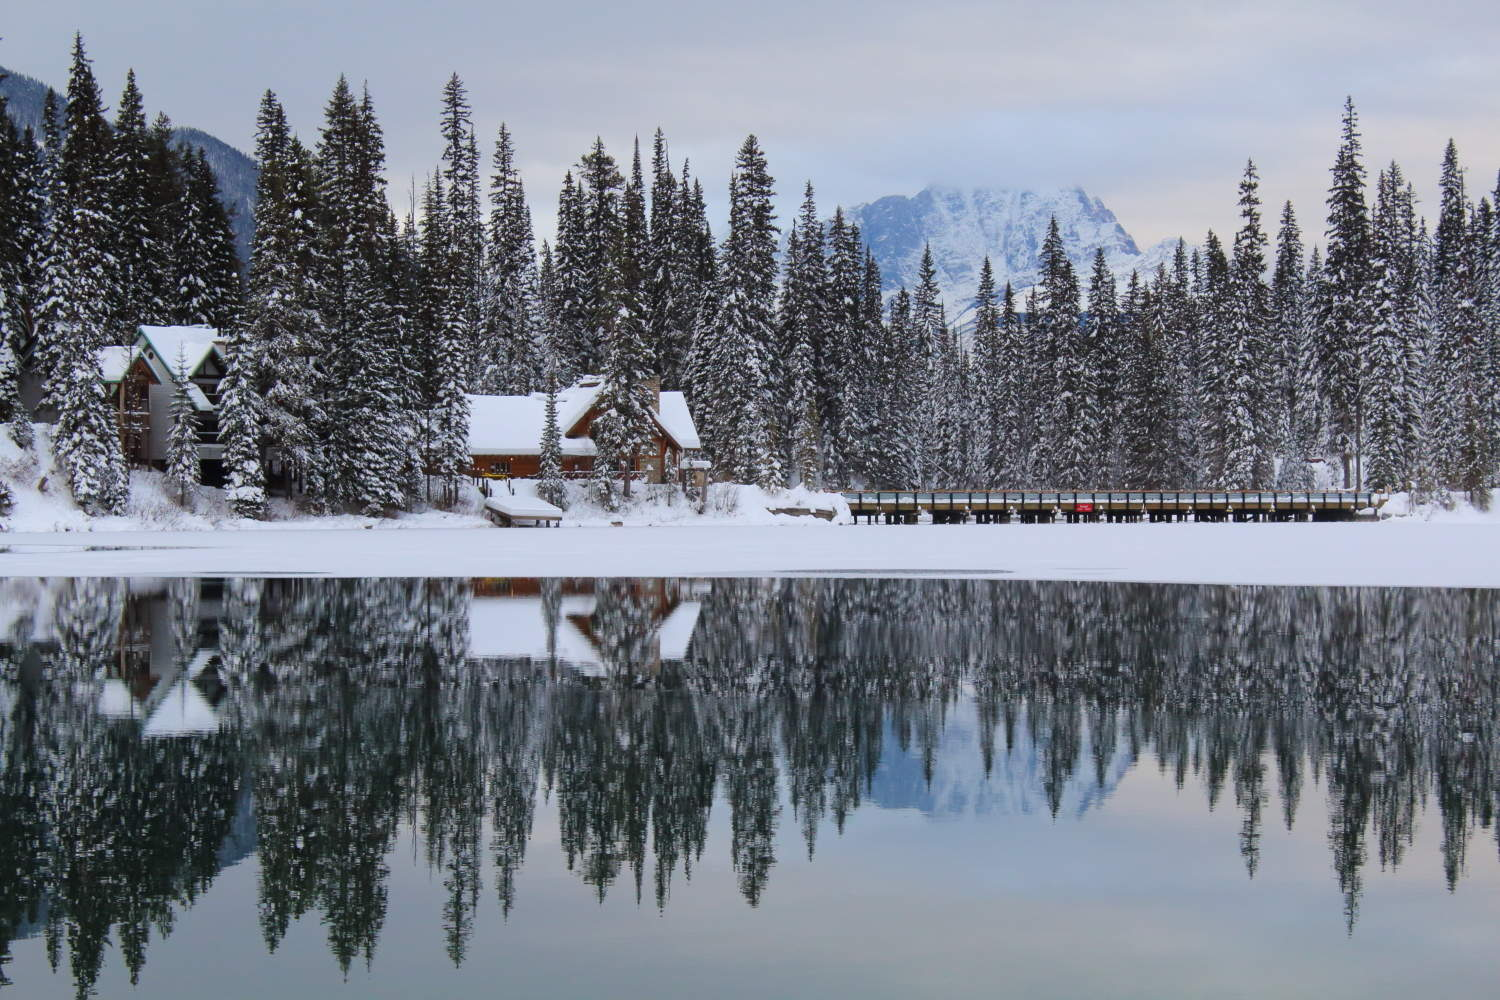 Looking across Emerald Lake